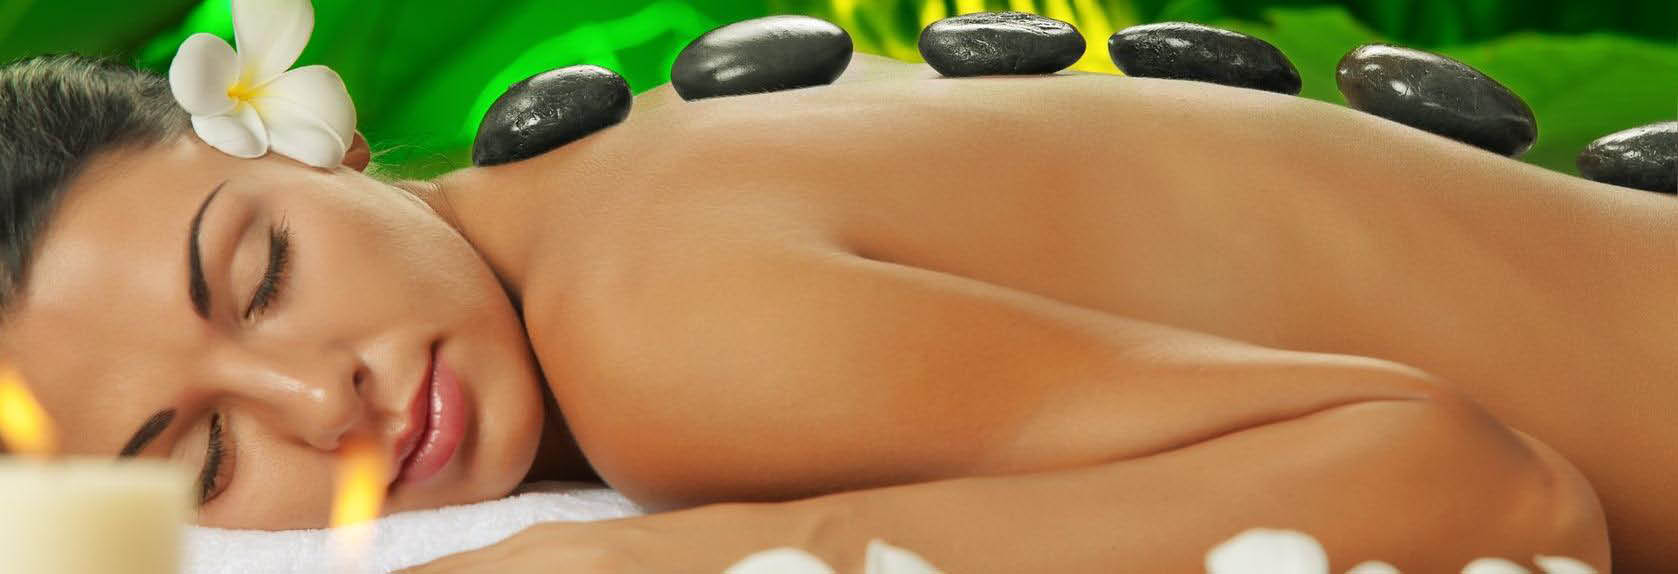 Hot Stone Massage Soothes Aching Muscles banner